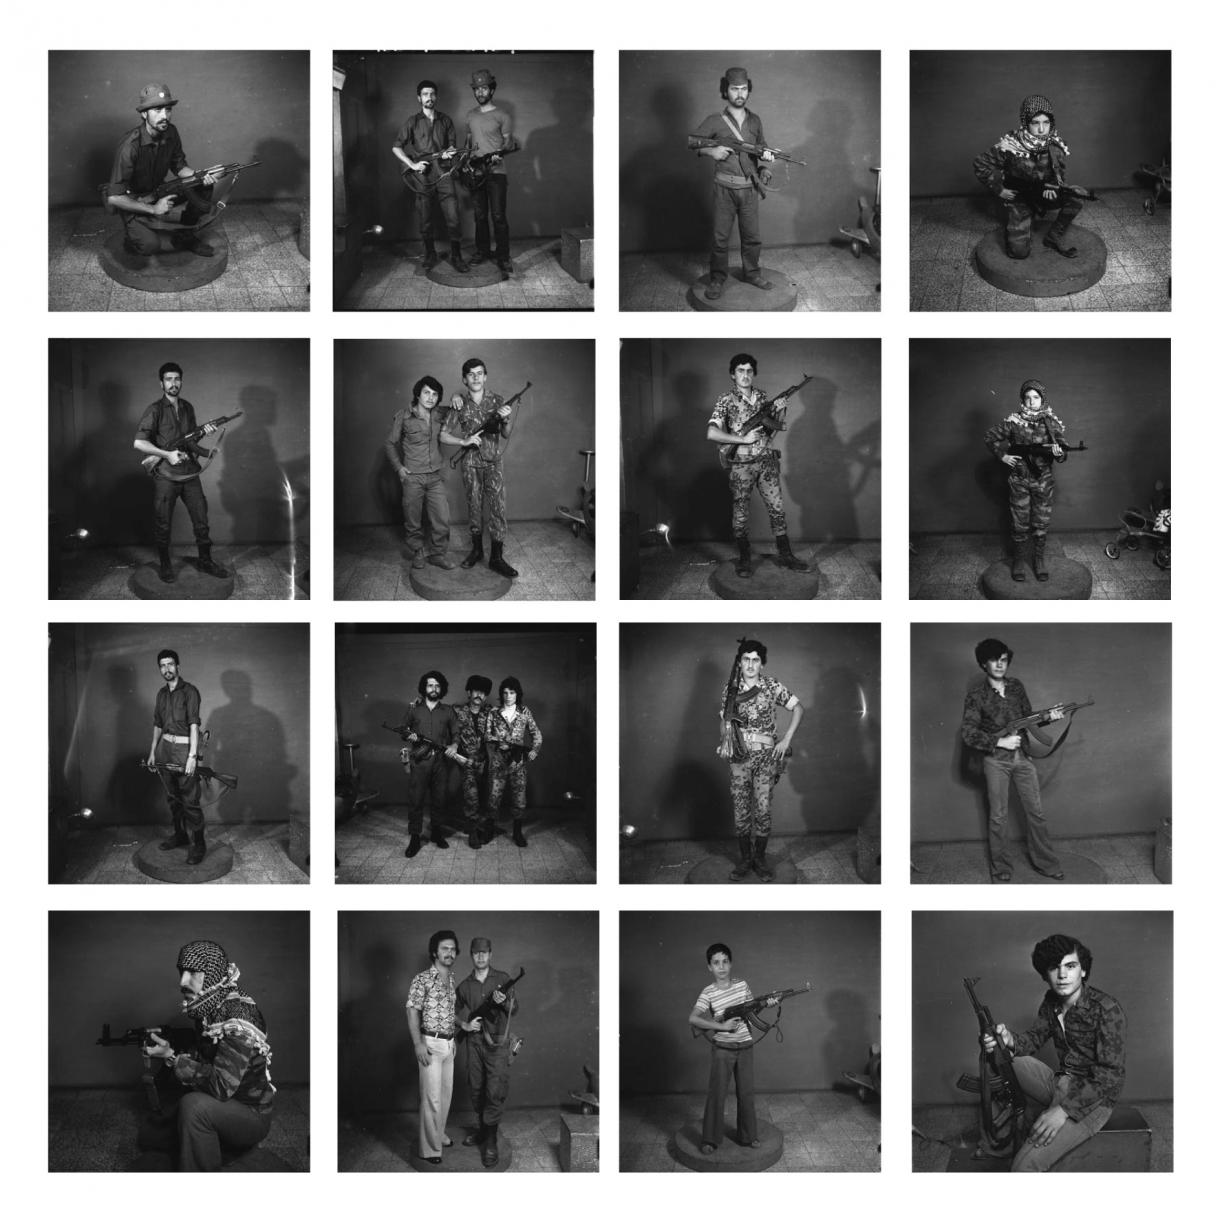 After they joined Military Struggle, Saida early 1970s, 2006, Set of 16 Silver prints, framed, 30 x 30 cm each